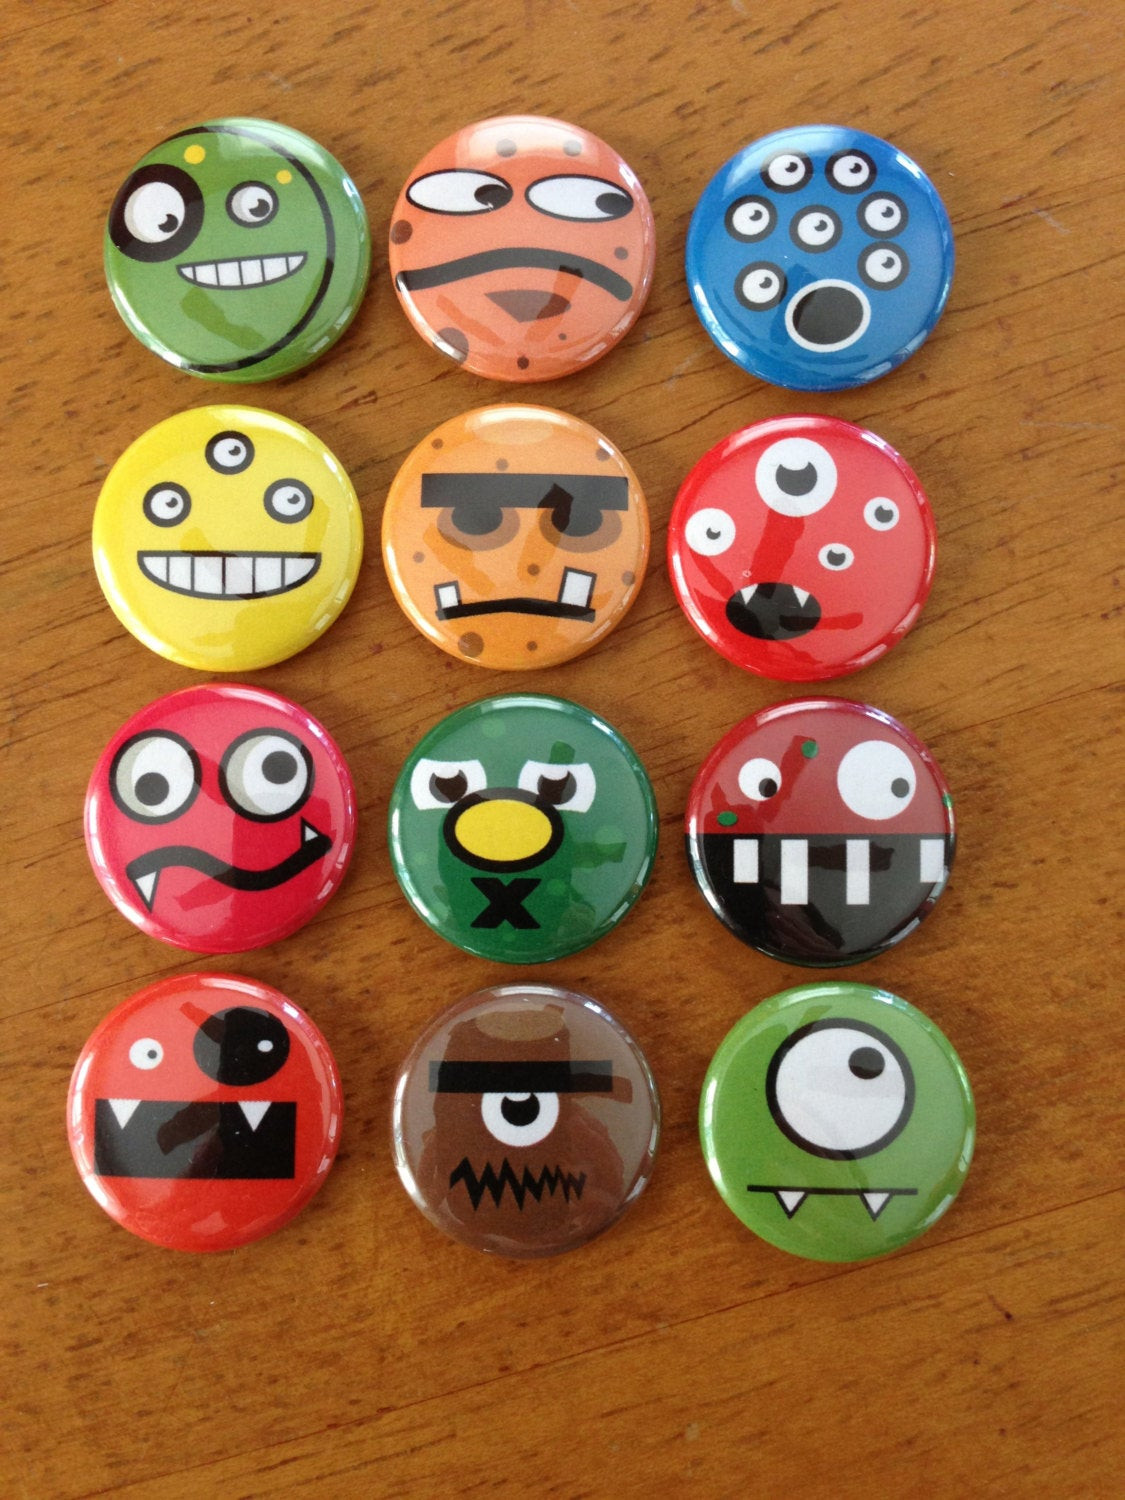 Pins Boton  Cute Monster Buttons – 1 Inch Pinback Button Set of 12